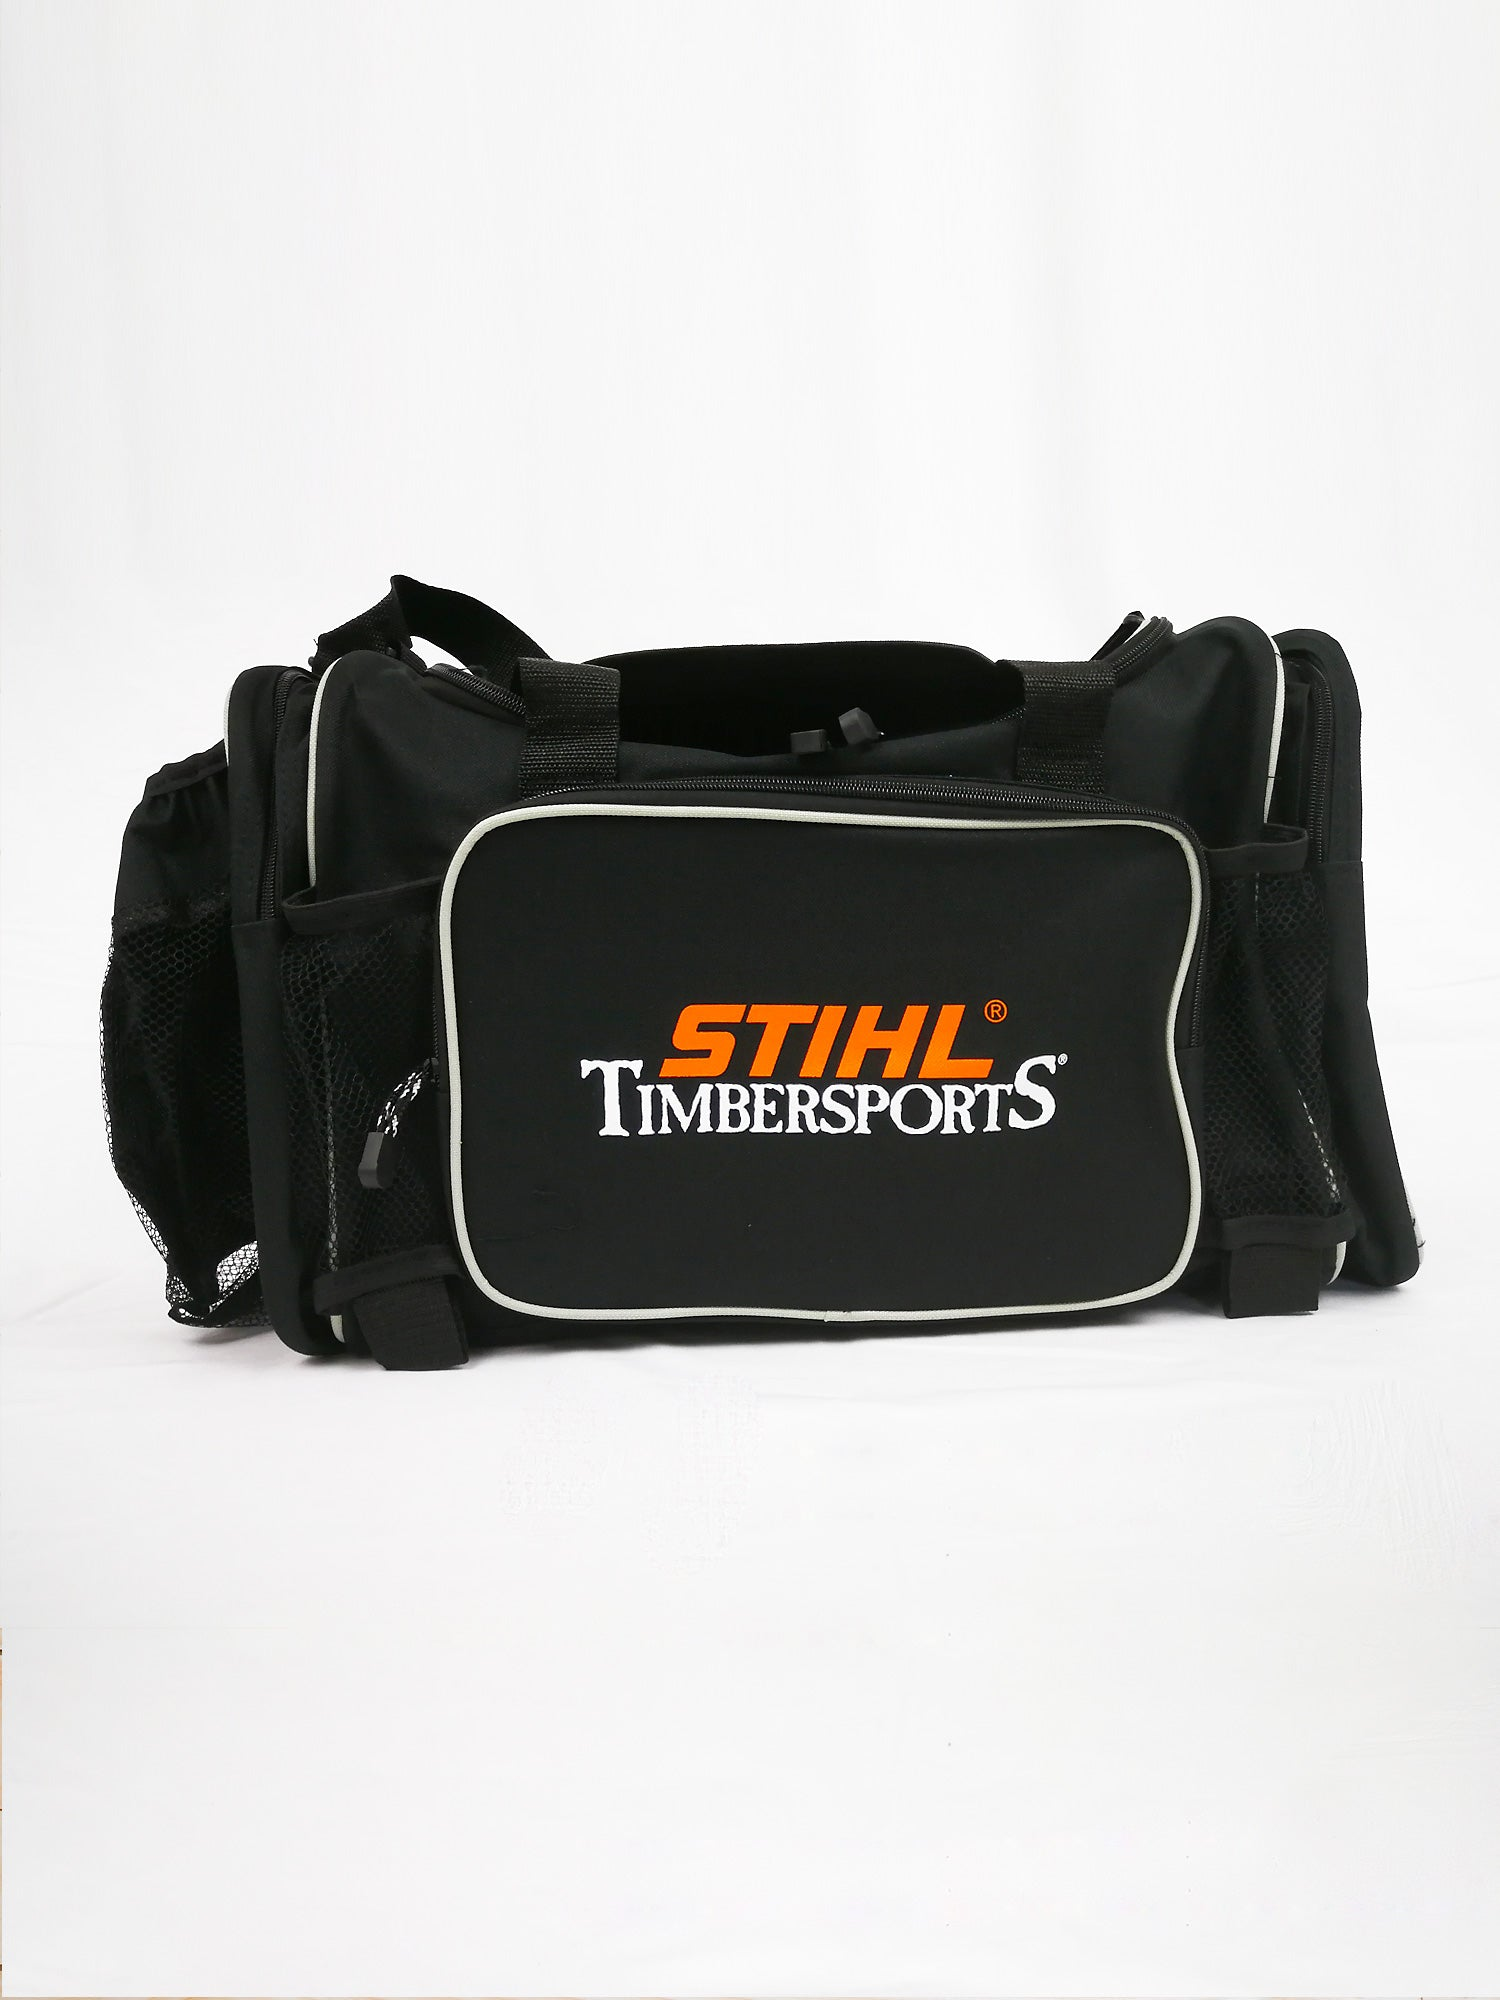 "STIHL TIMBERSPORTS 23"" Sports Bag"